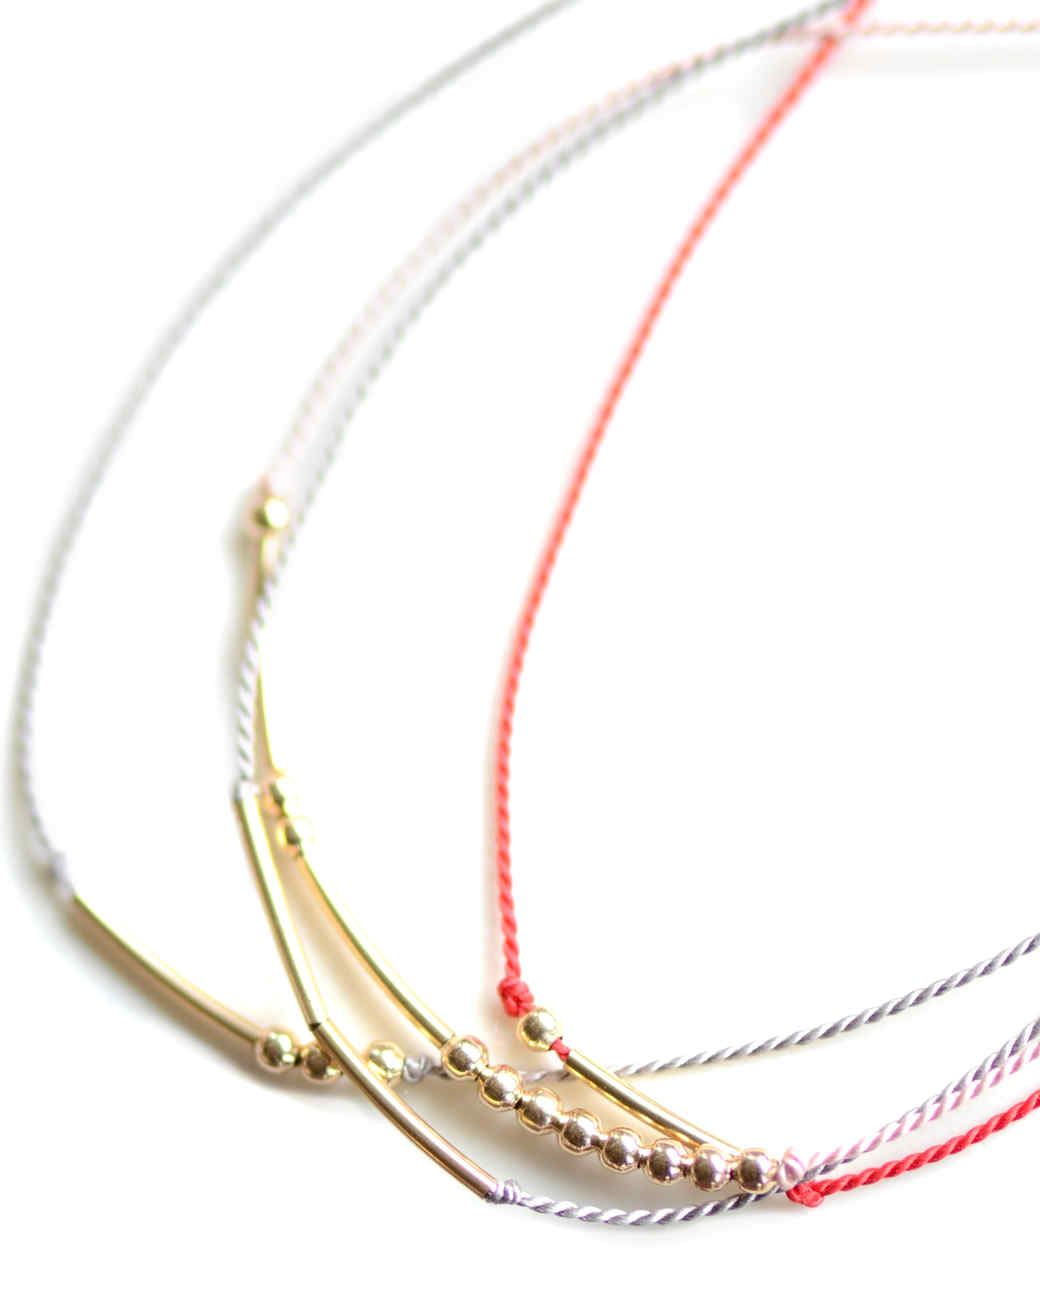 necklace-dsc-1086.jpg